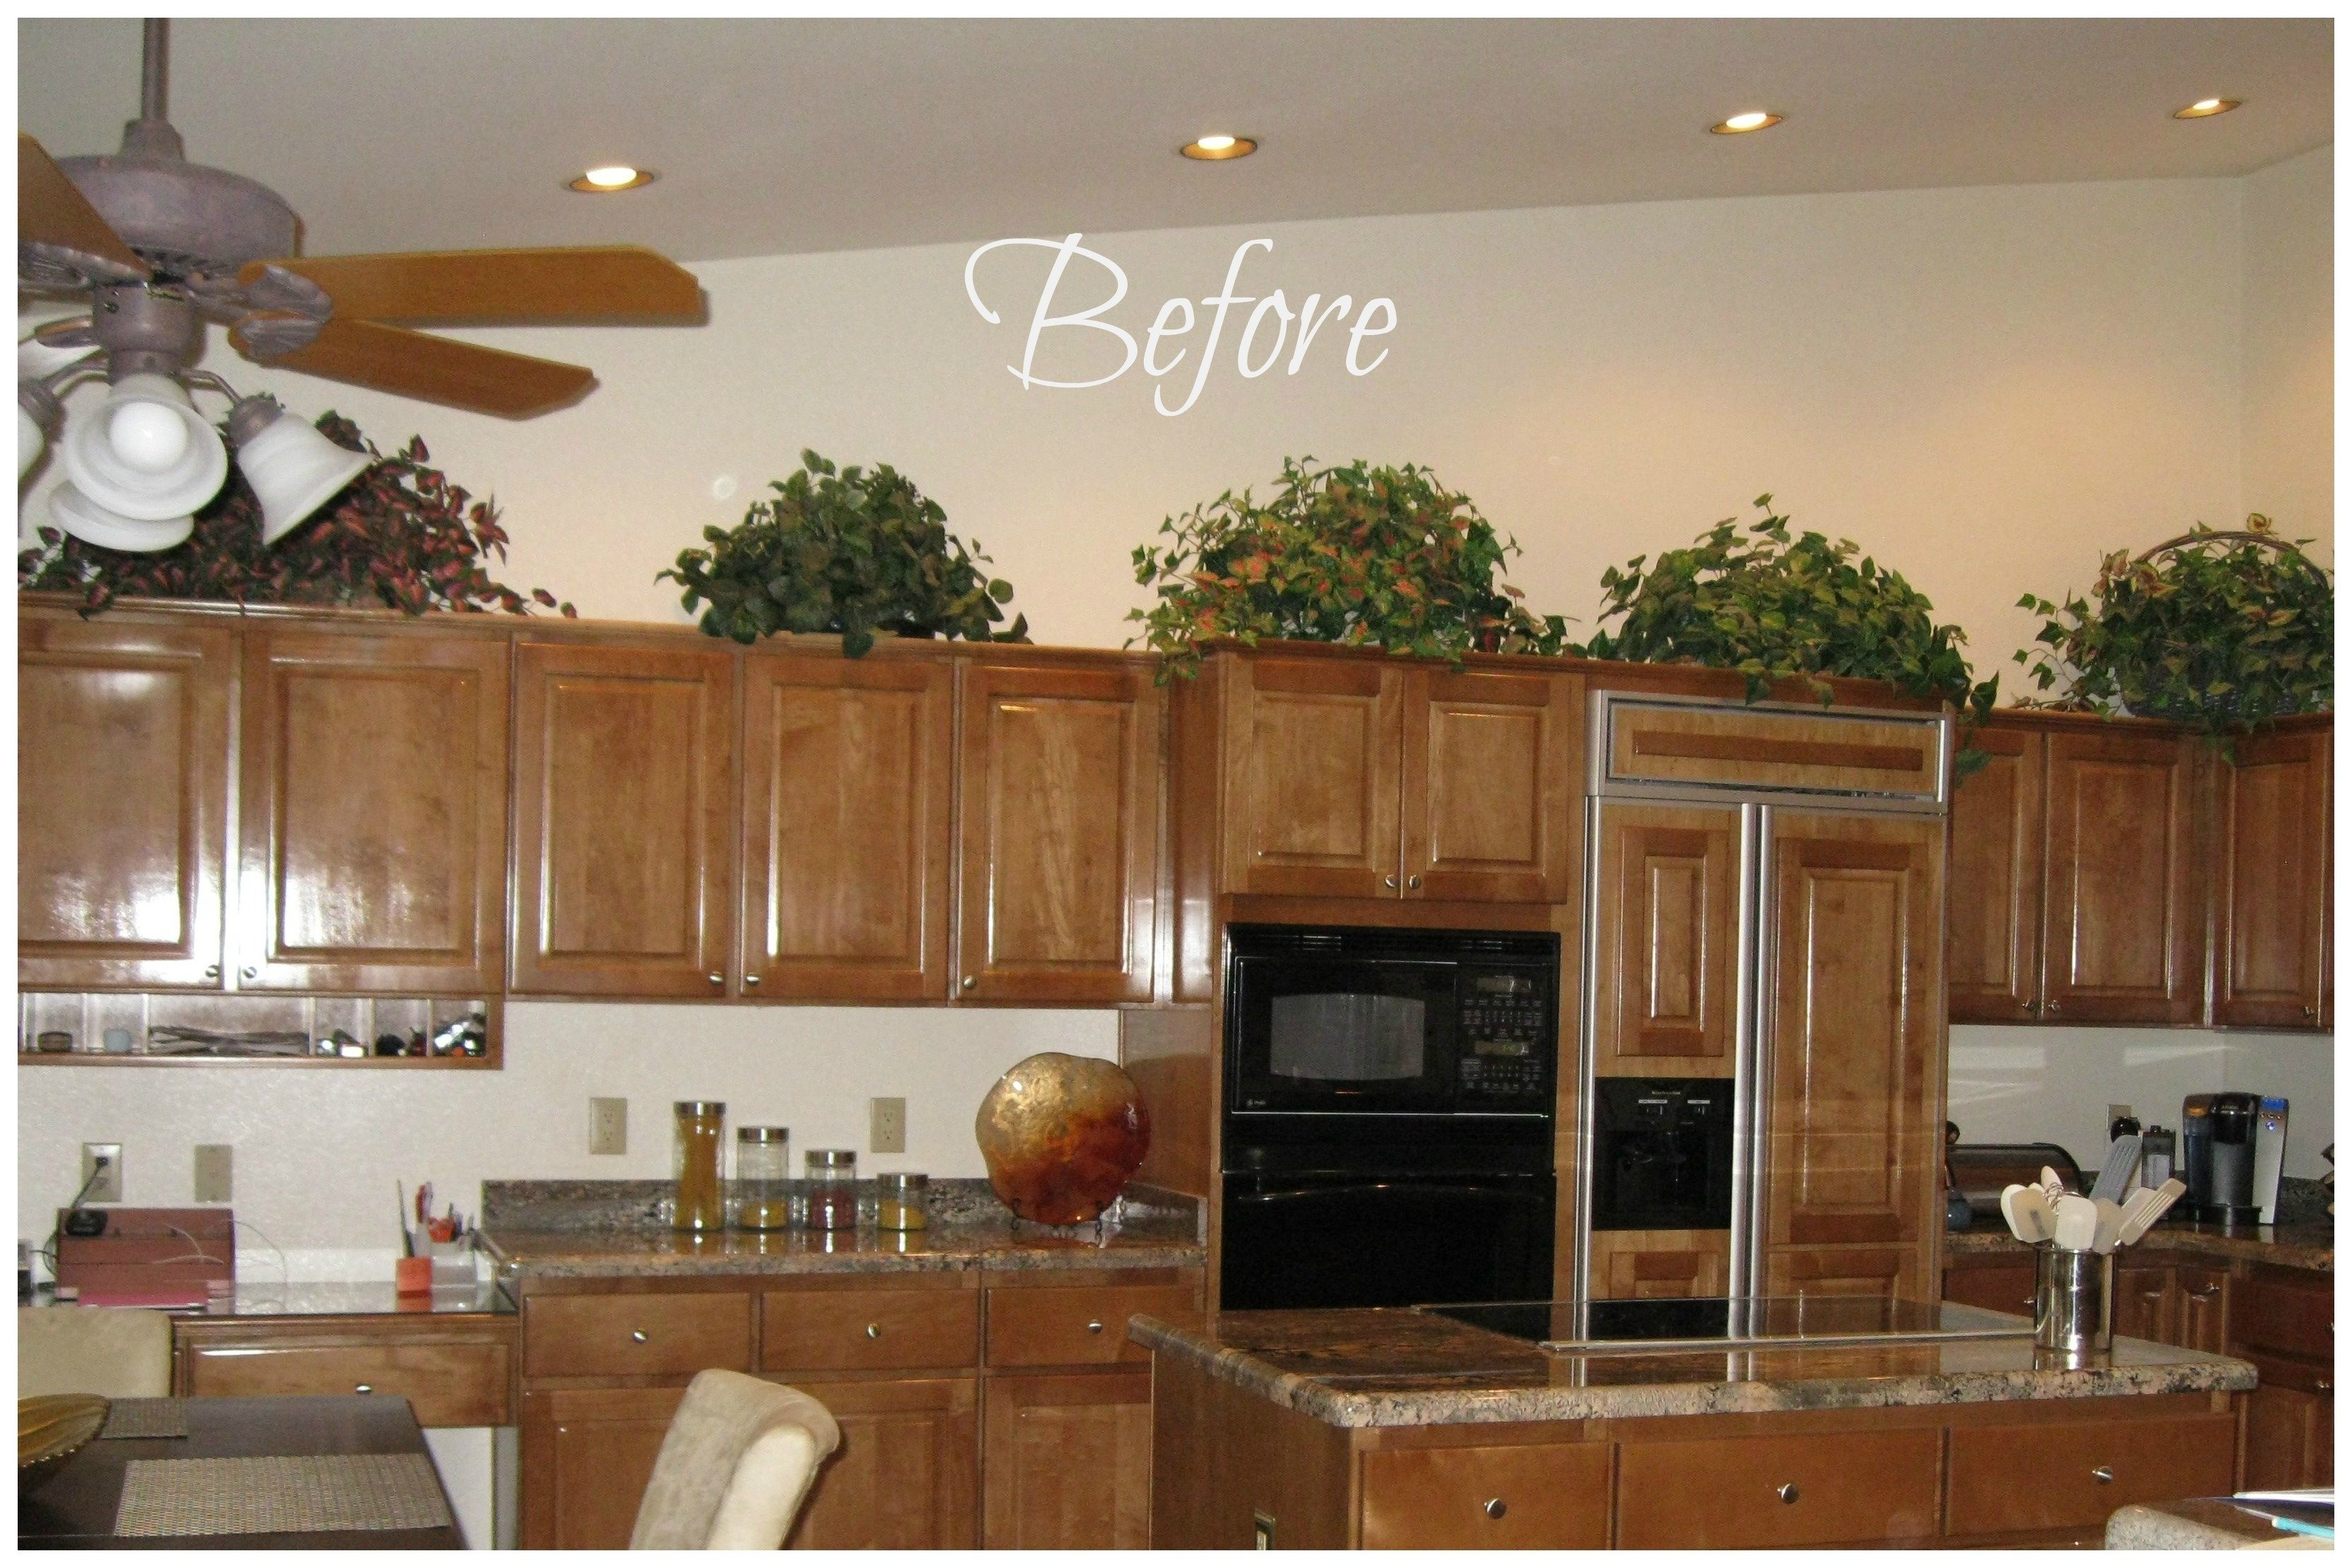 10 Cute Decorating Ideas Above Kitchen Cabinets how do decorate above my kitchen cabinets decobizz 2